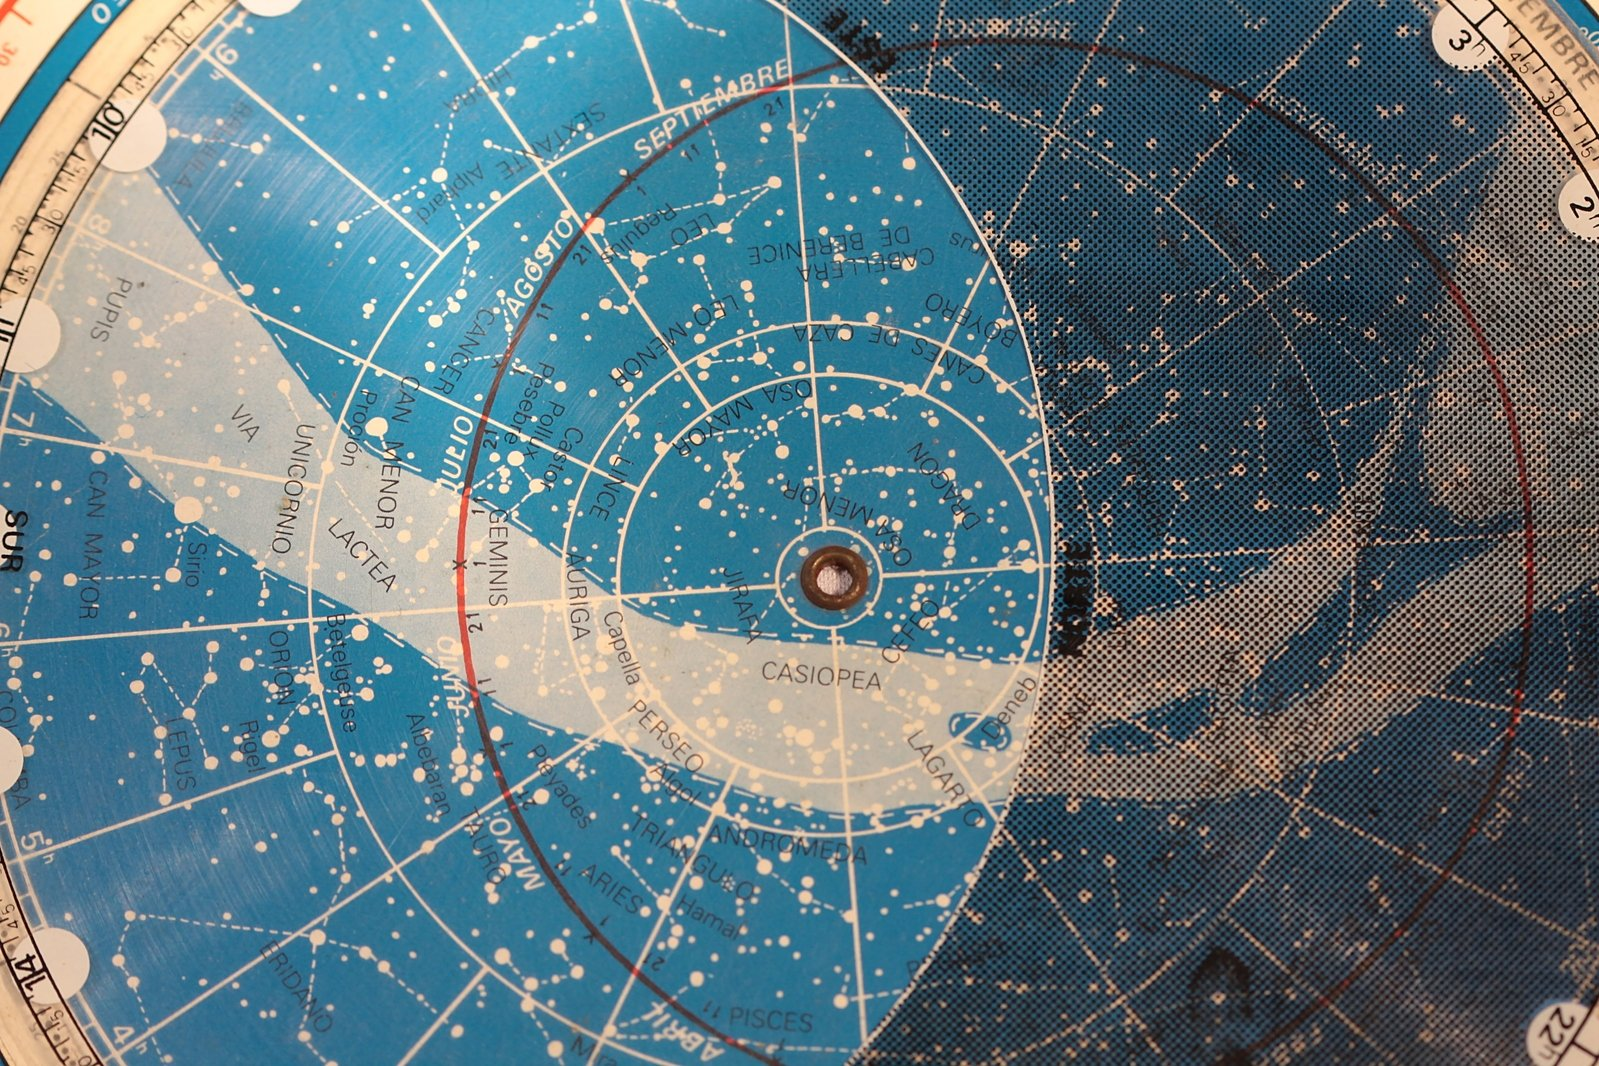 Free Star Chart Stock Photo - FreeImages com